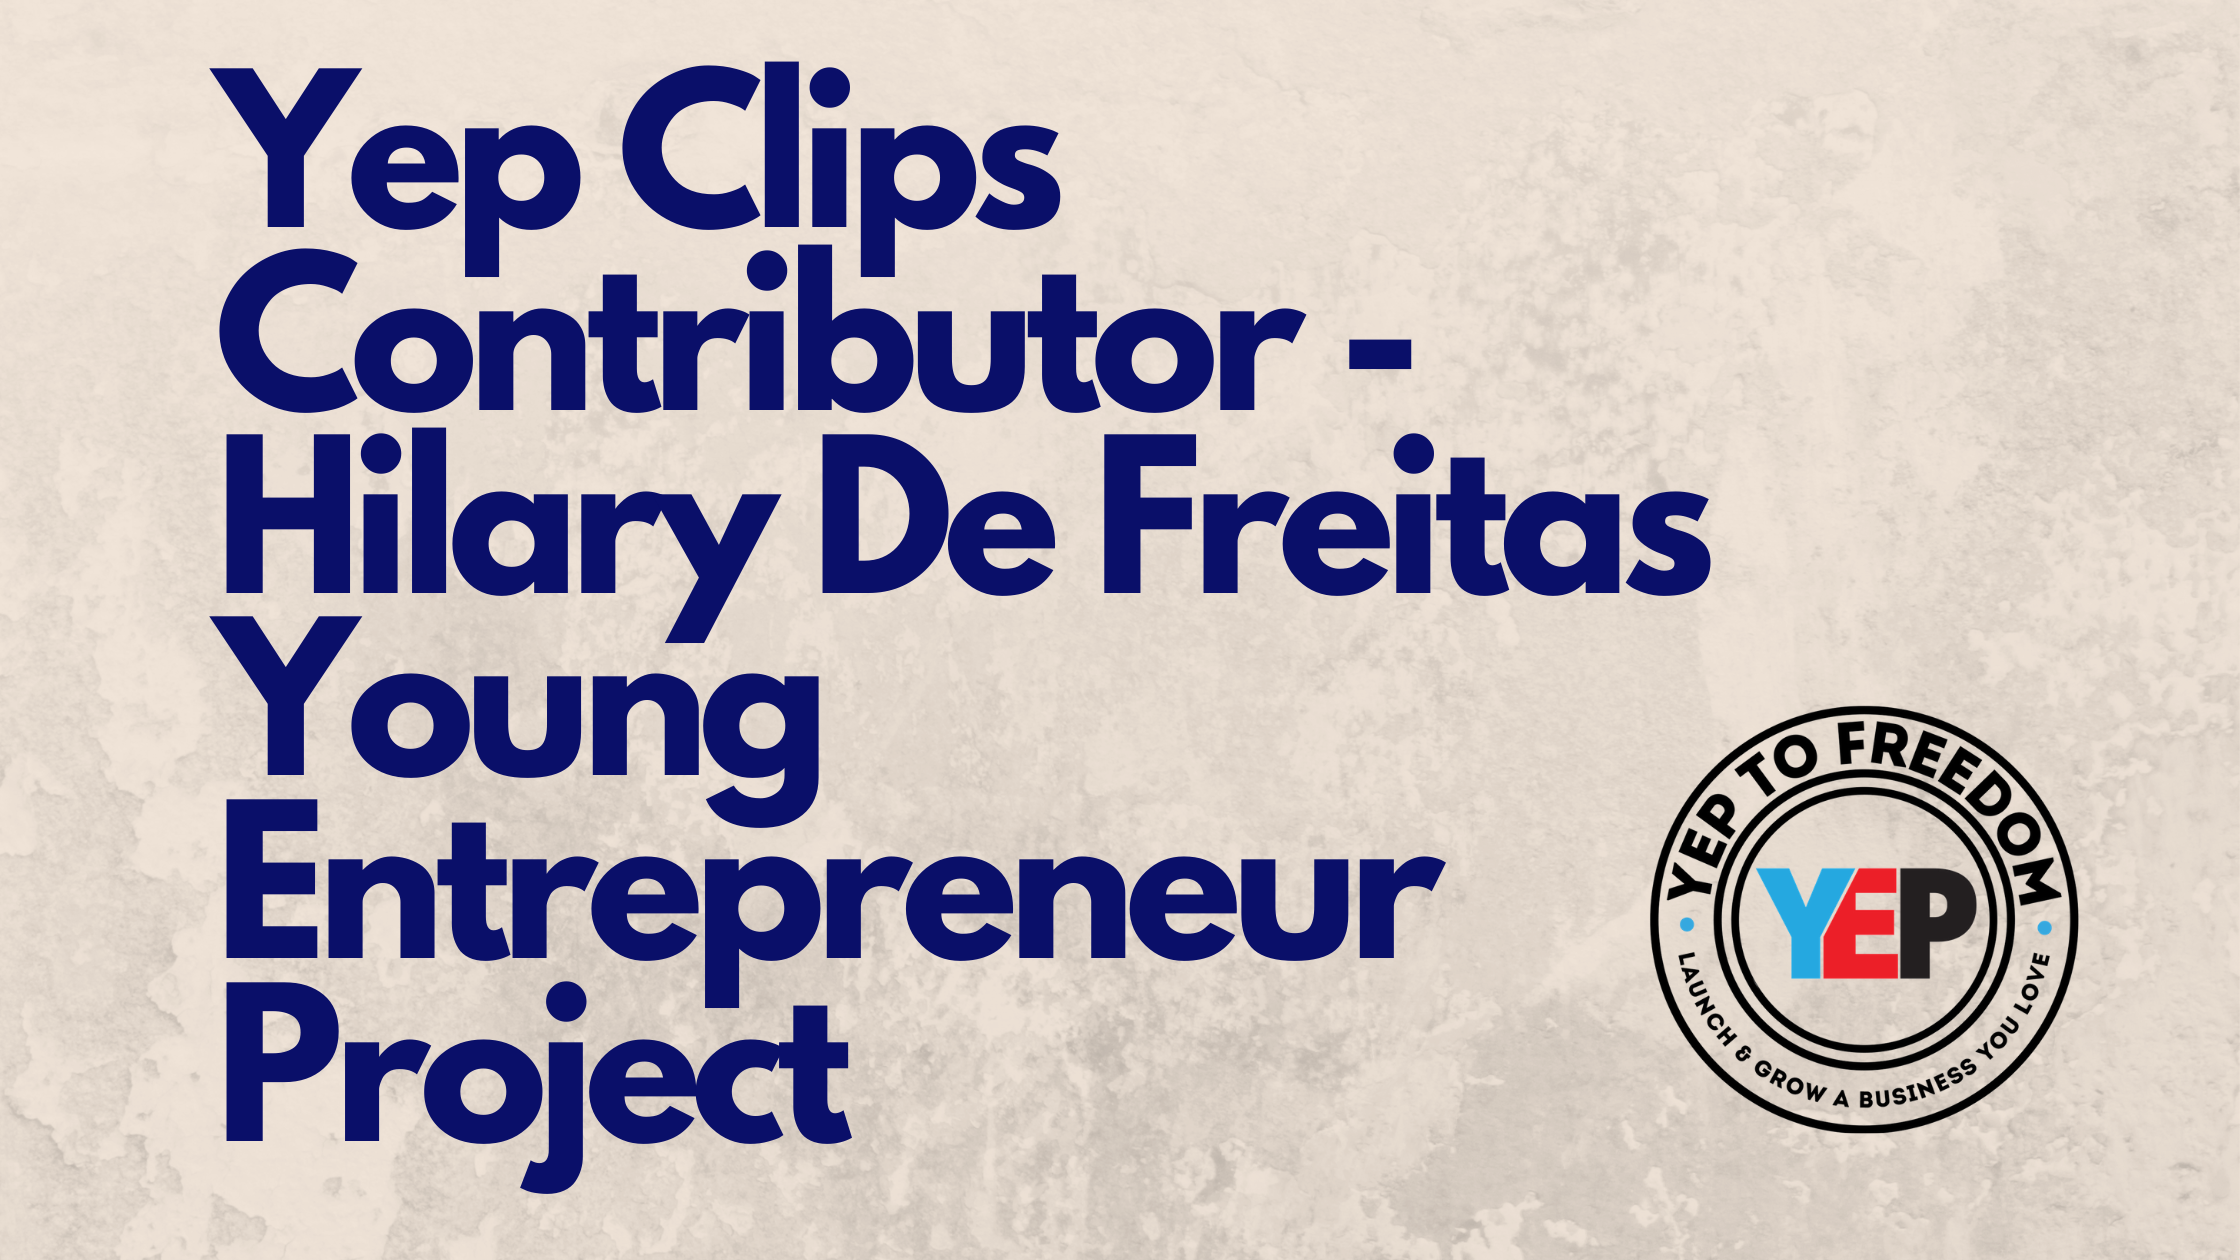 YEP Clips Contributor Hilary De Freitas: Young Entrepreneur Project